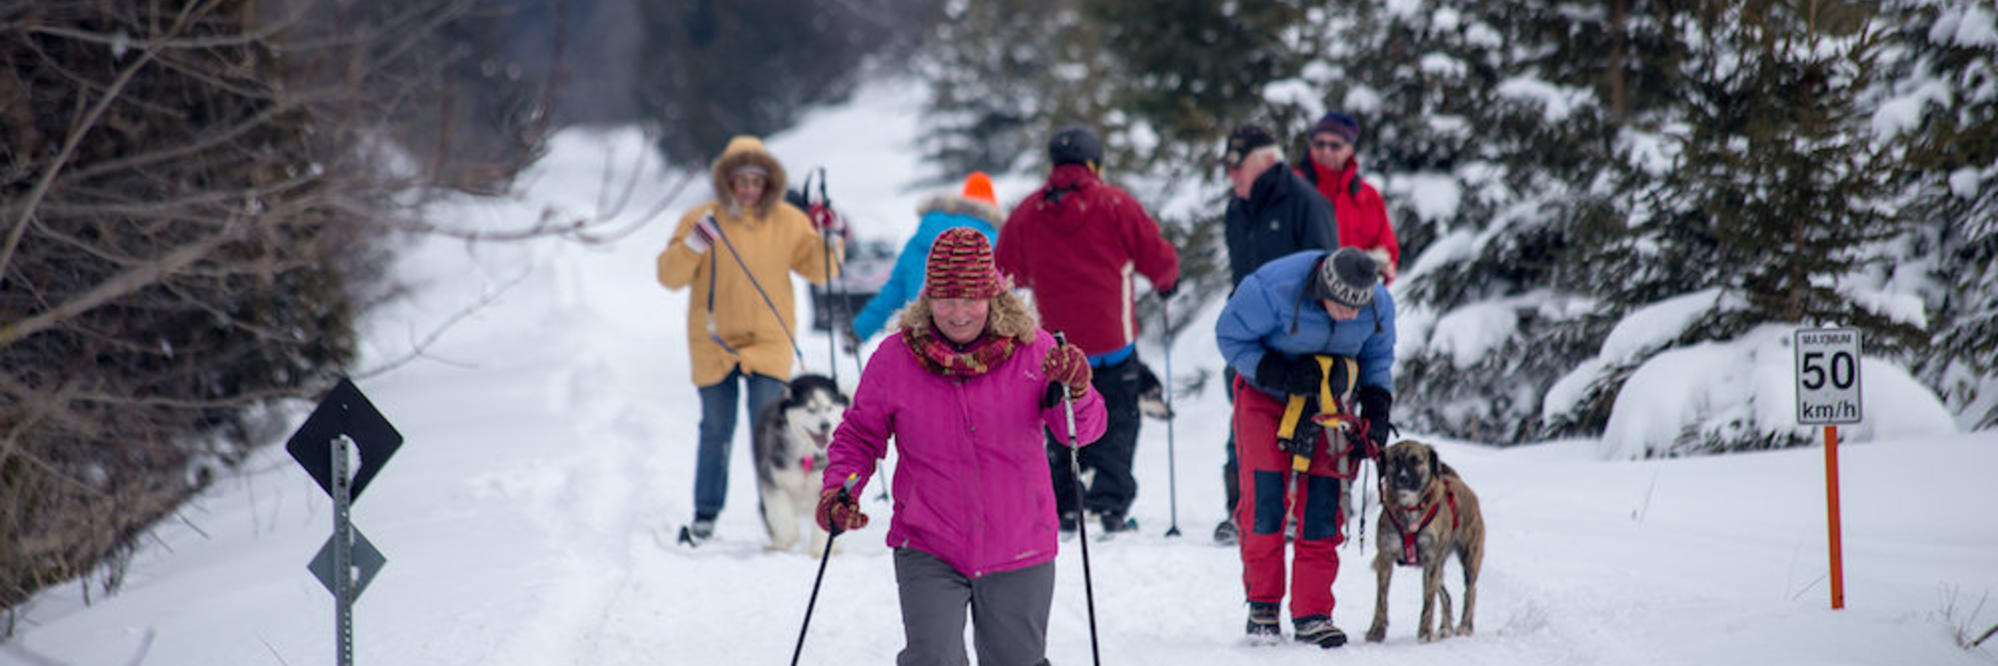 Families cross-country skiing on trails.